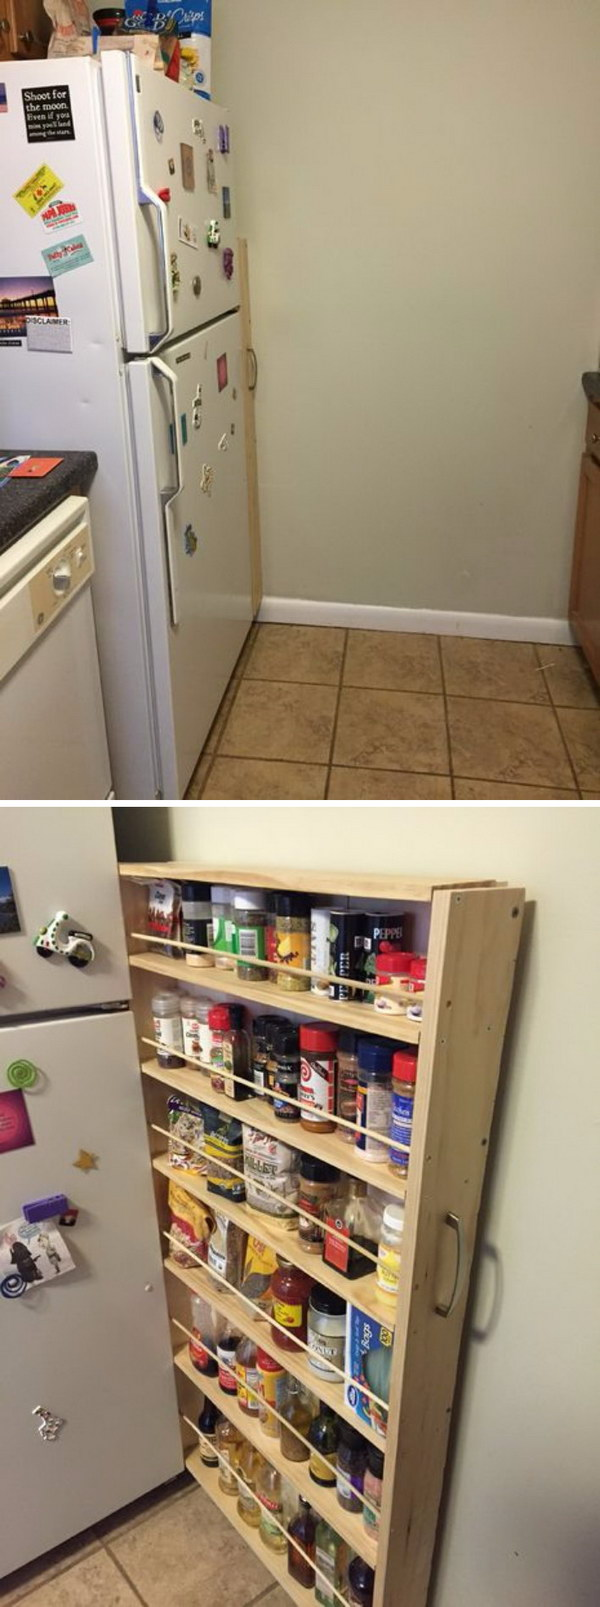 Hidden Fridge Gap Slide Out Pantry.